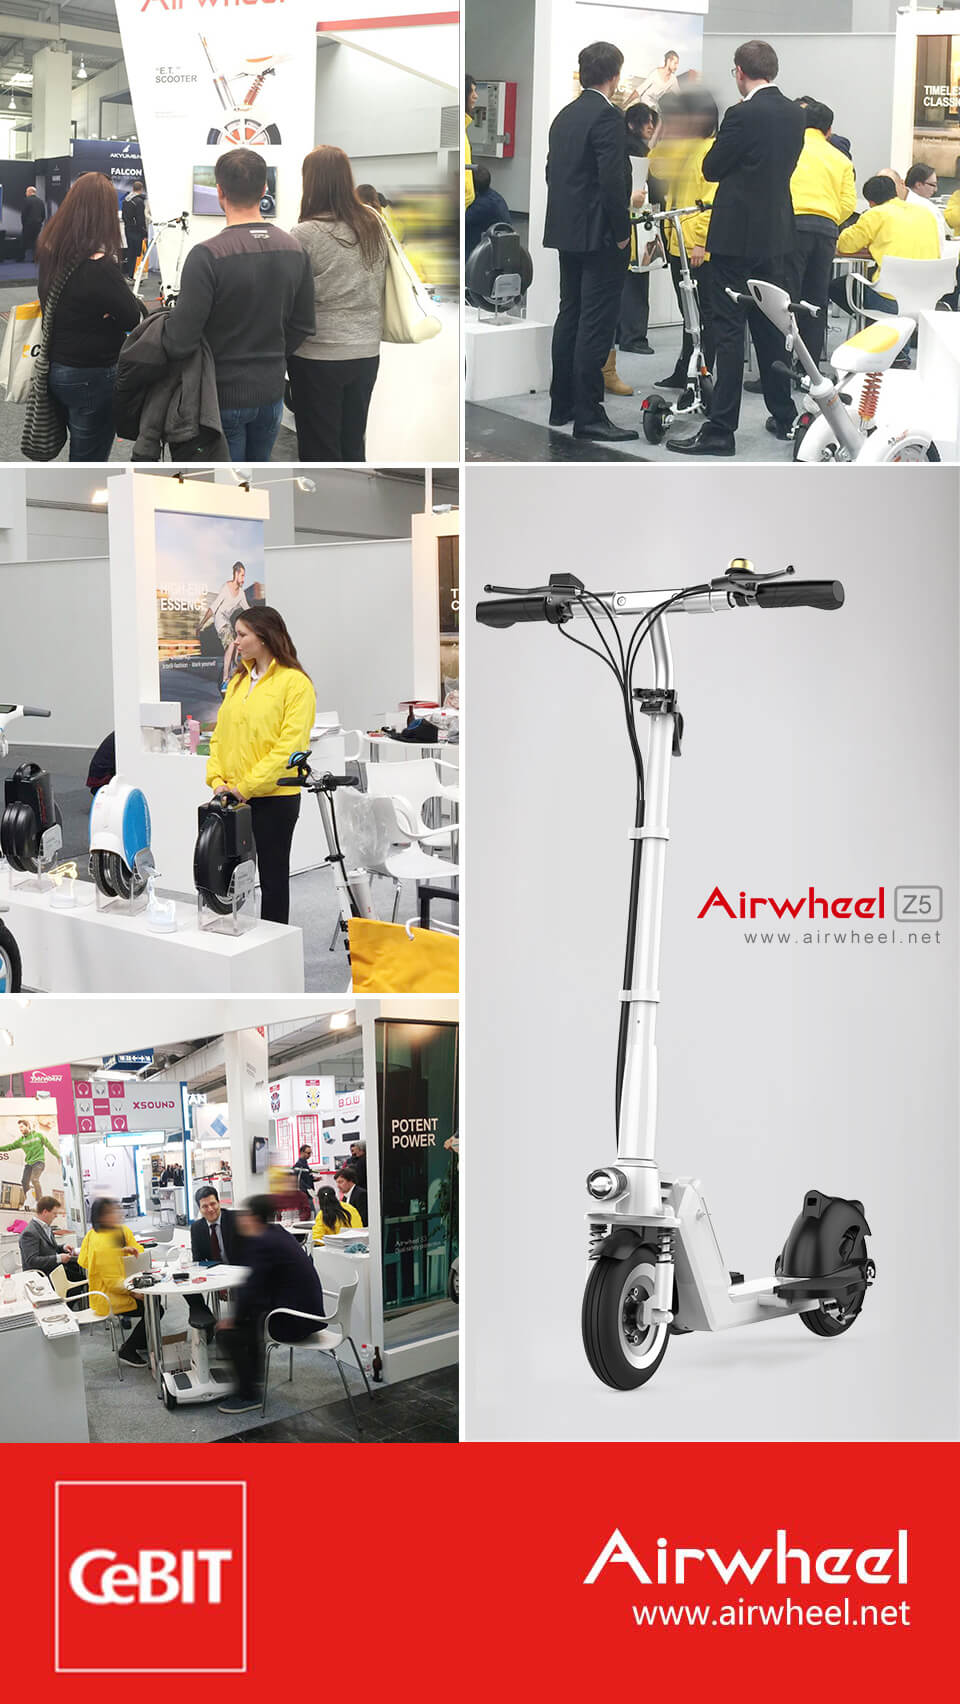 http://www.airwheel.net/scooter/cebit-3.14-6.jpg